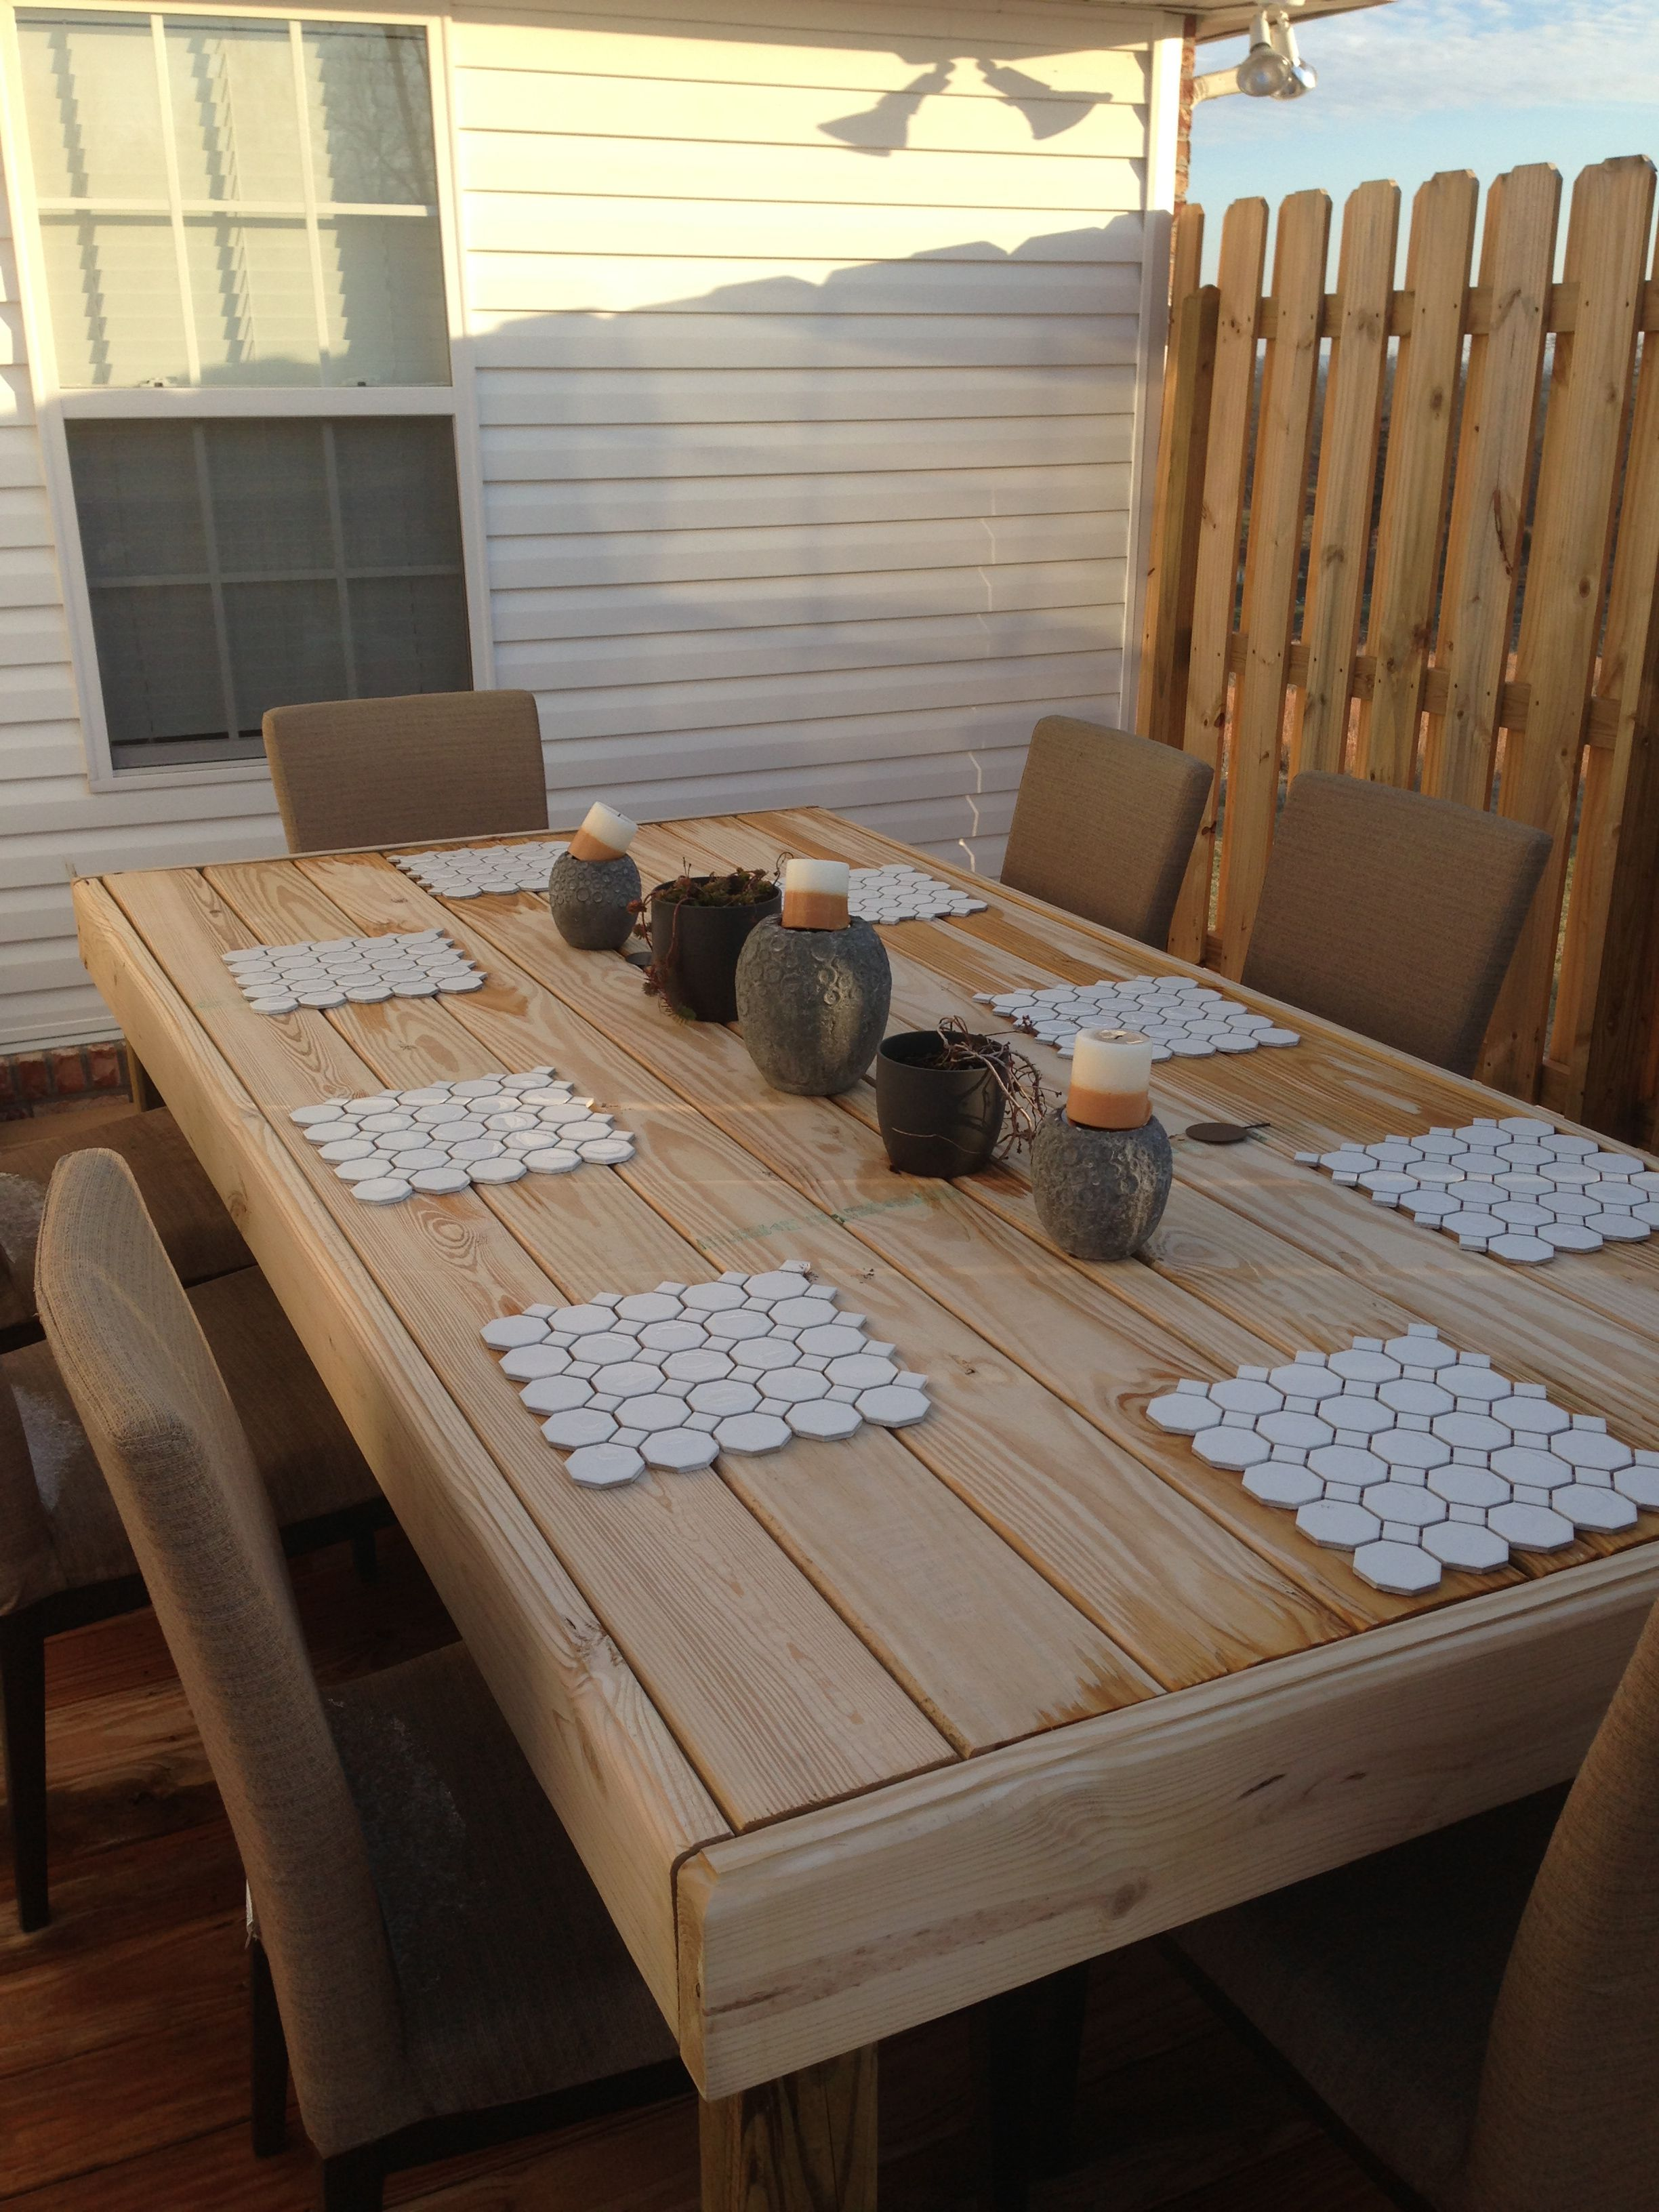 5 1 4 Decking Board Table How To Make Bed Pallet Table 400 x 300